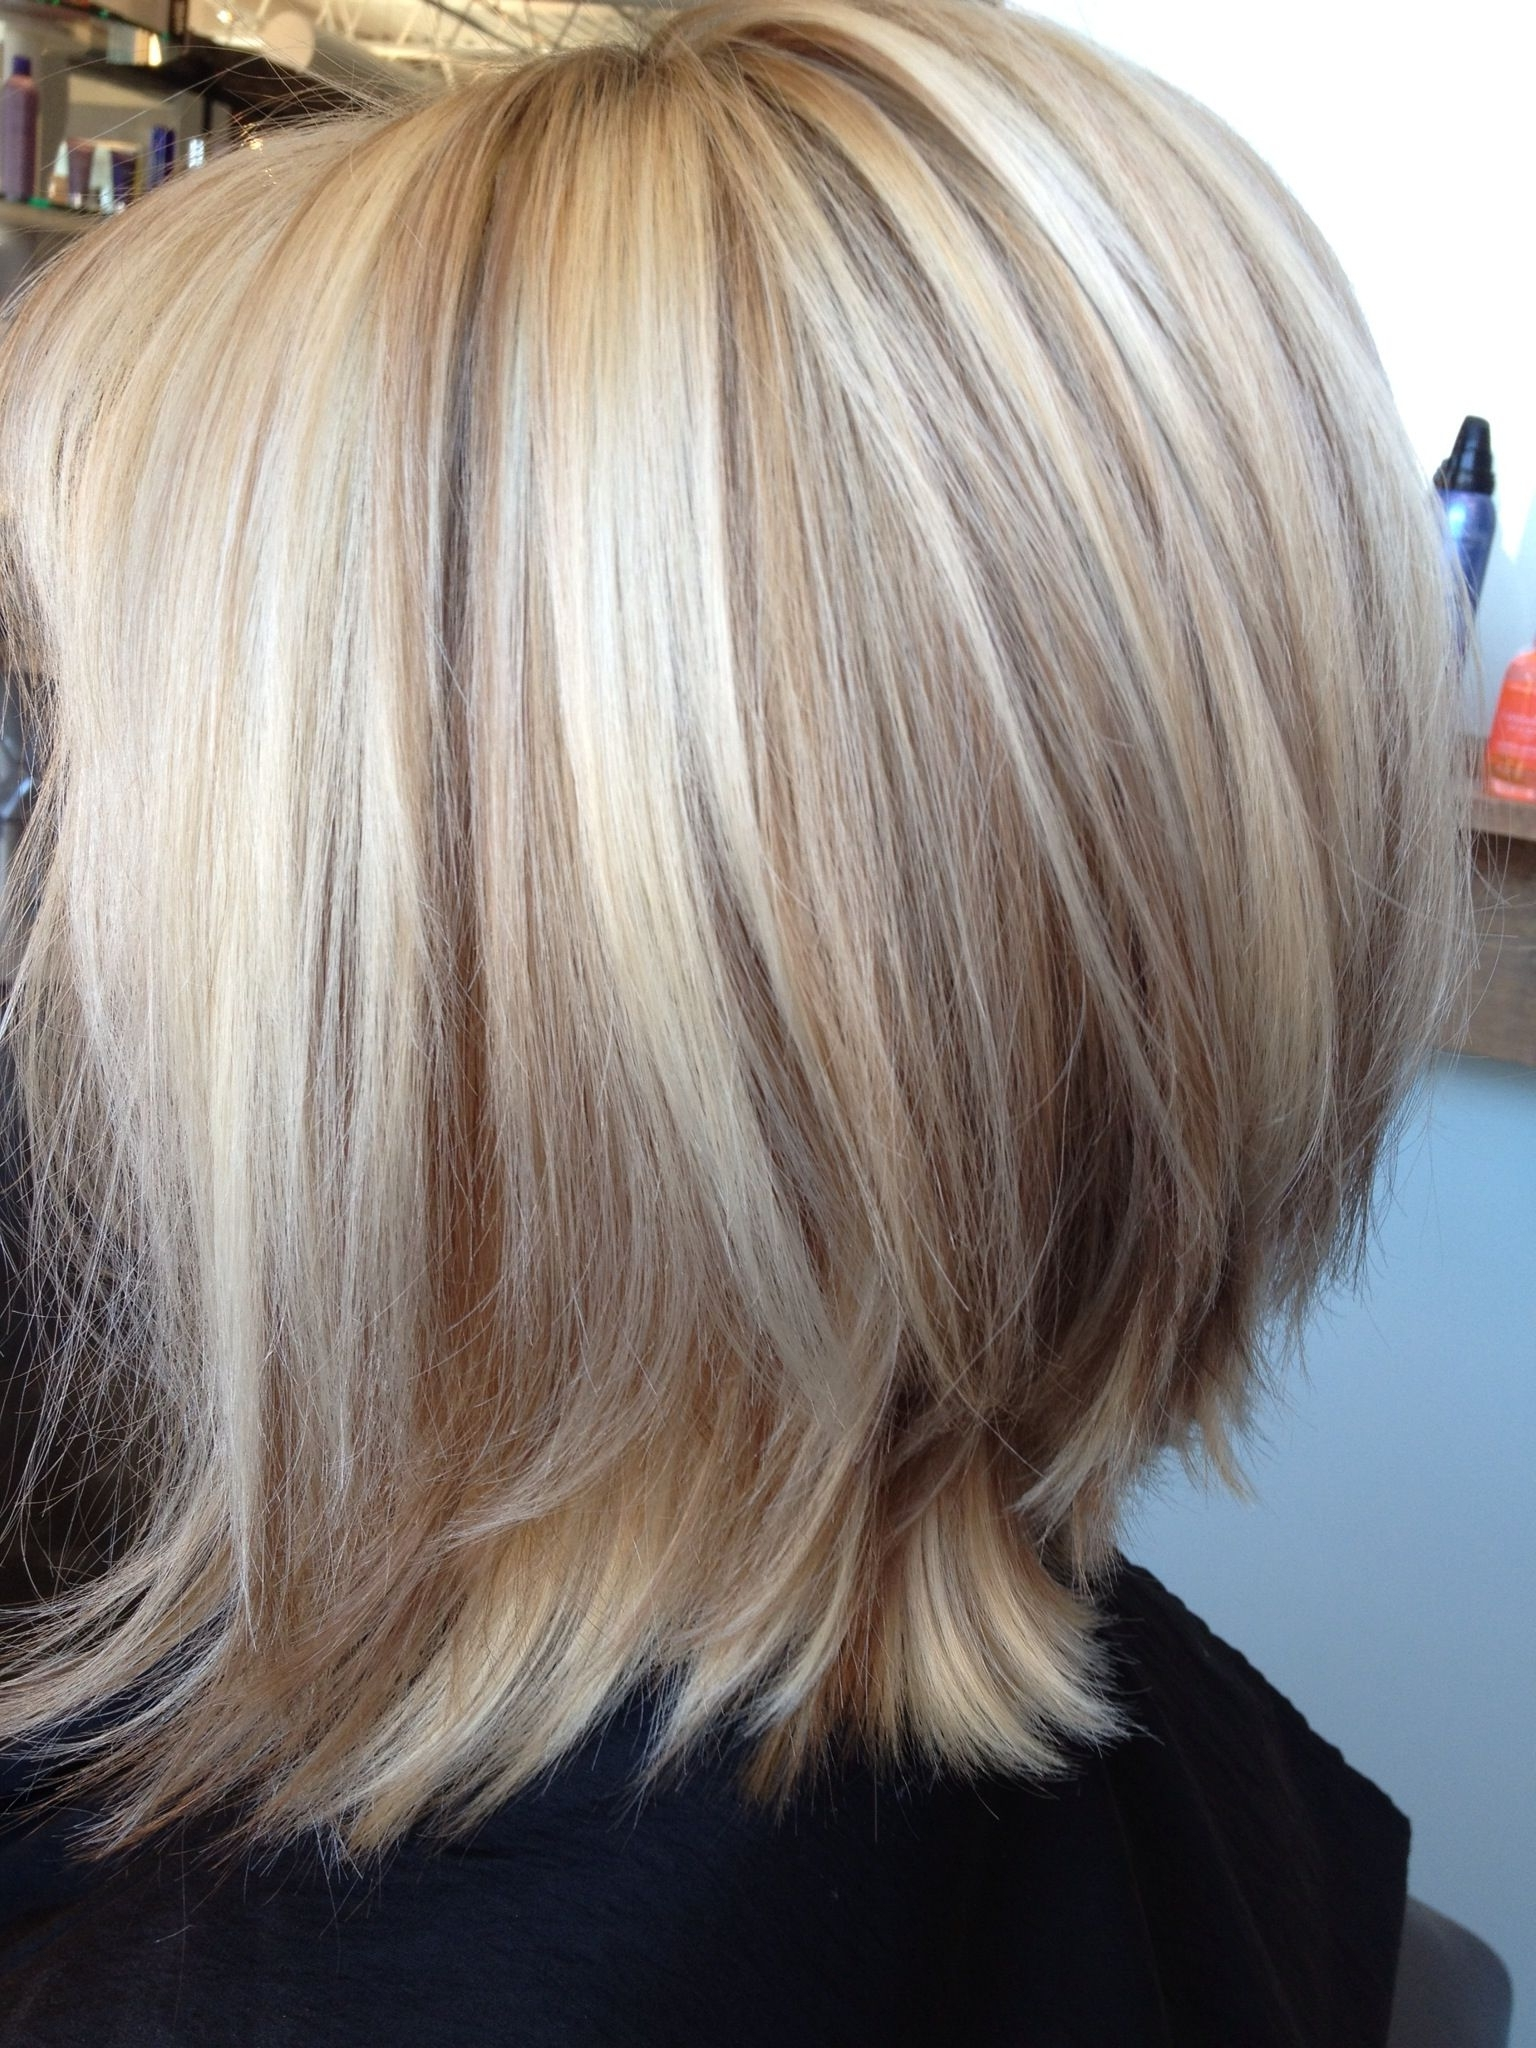 Most Current Short Blonde Bob Hairstyles With Layers In Gorgeous Blonde Bob With Lowlights (View 12 of 20)